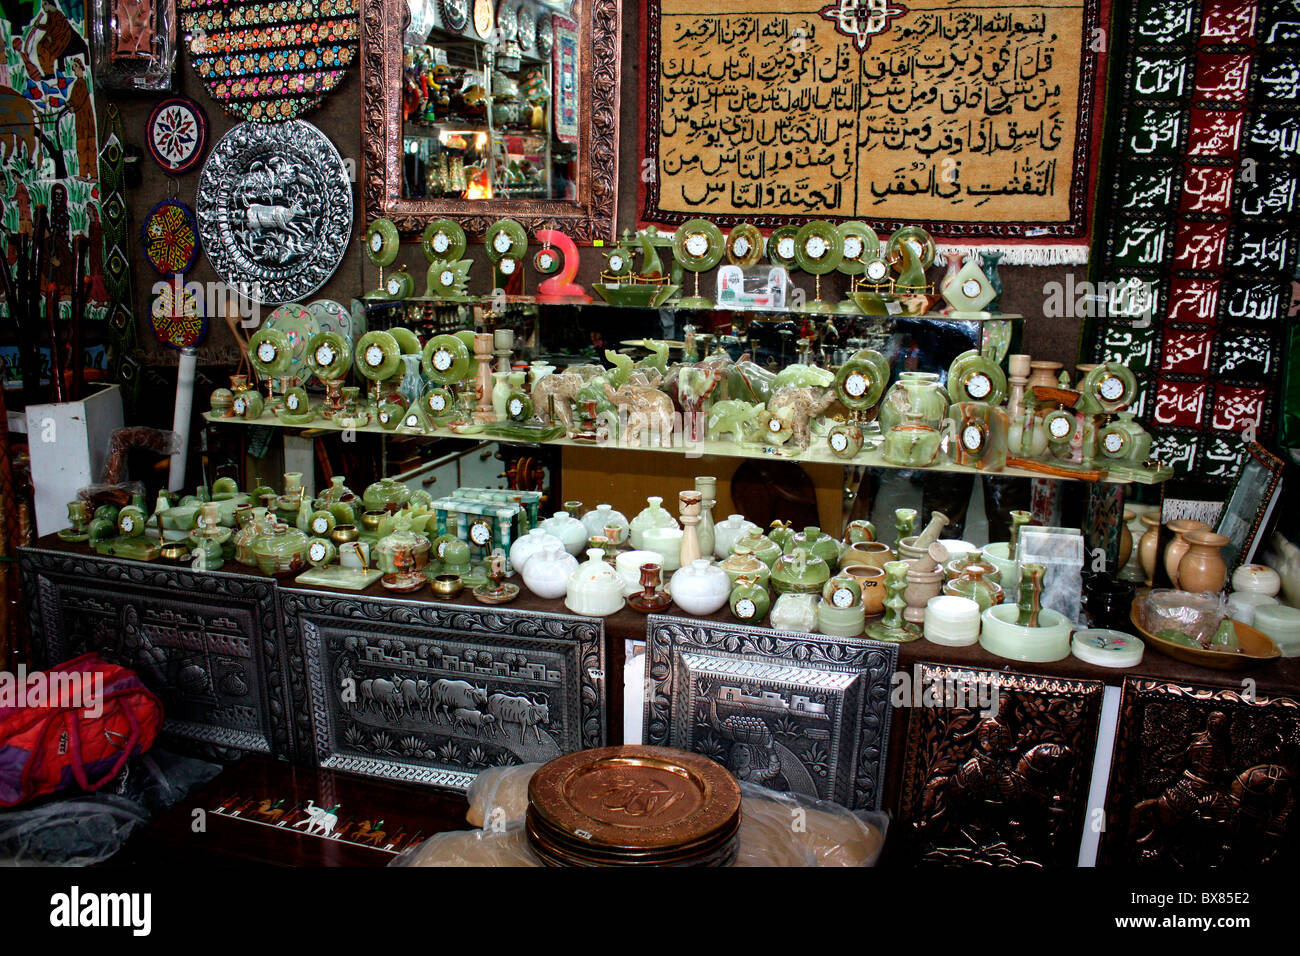 Onyx gemstone crafts and wall hangings and other handicrafts on display at Murree,Pakistan - Stock Image